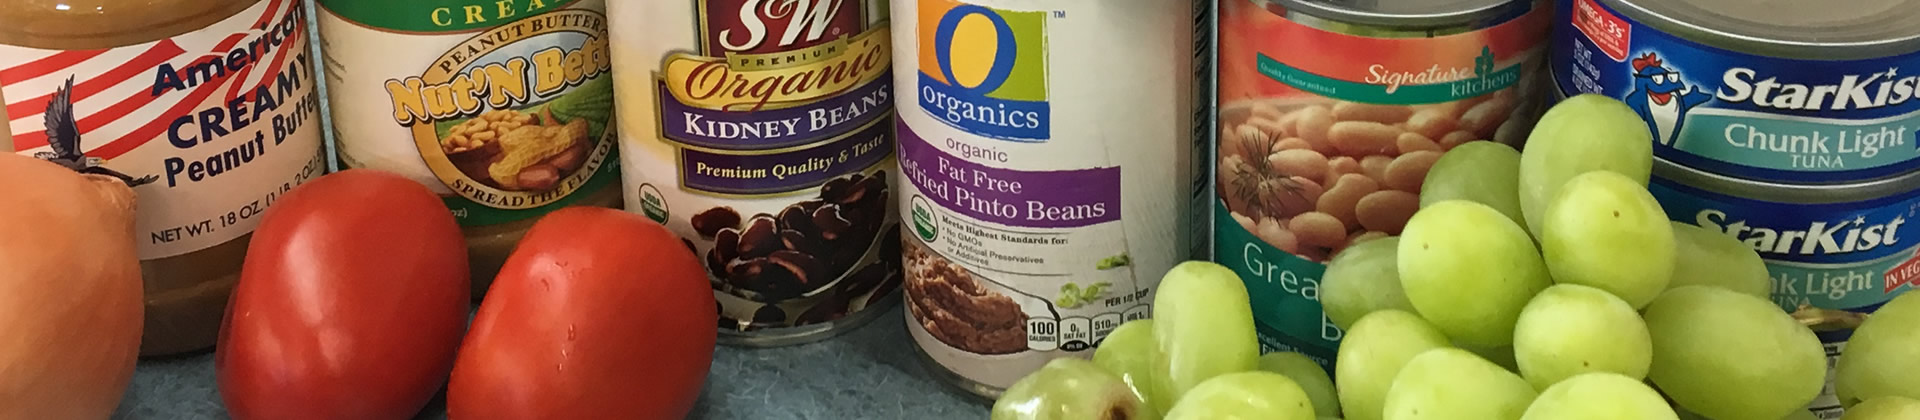 Photo of Canned Goods and Produce